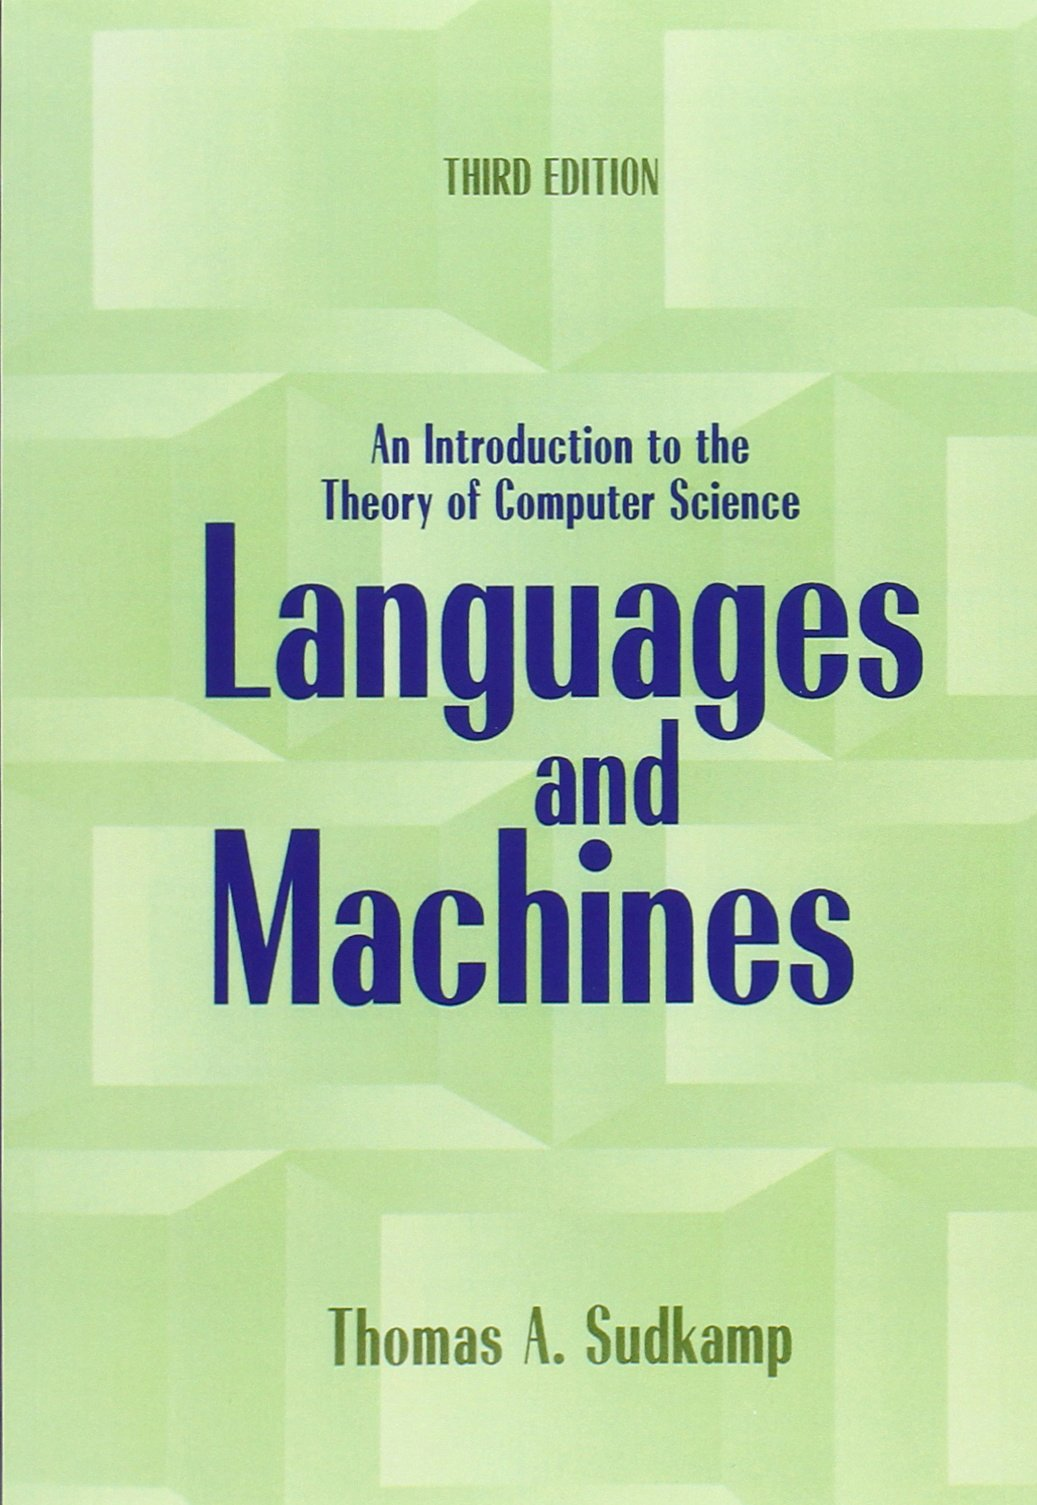 languages-and-machines-an-introduction-to-the-theory-of-computer-science